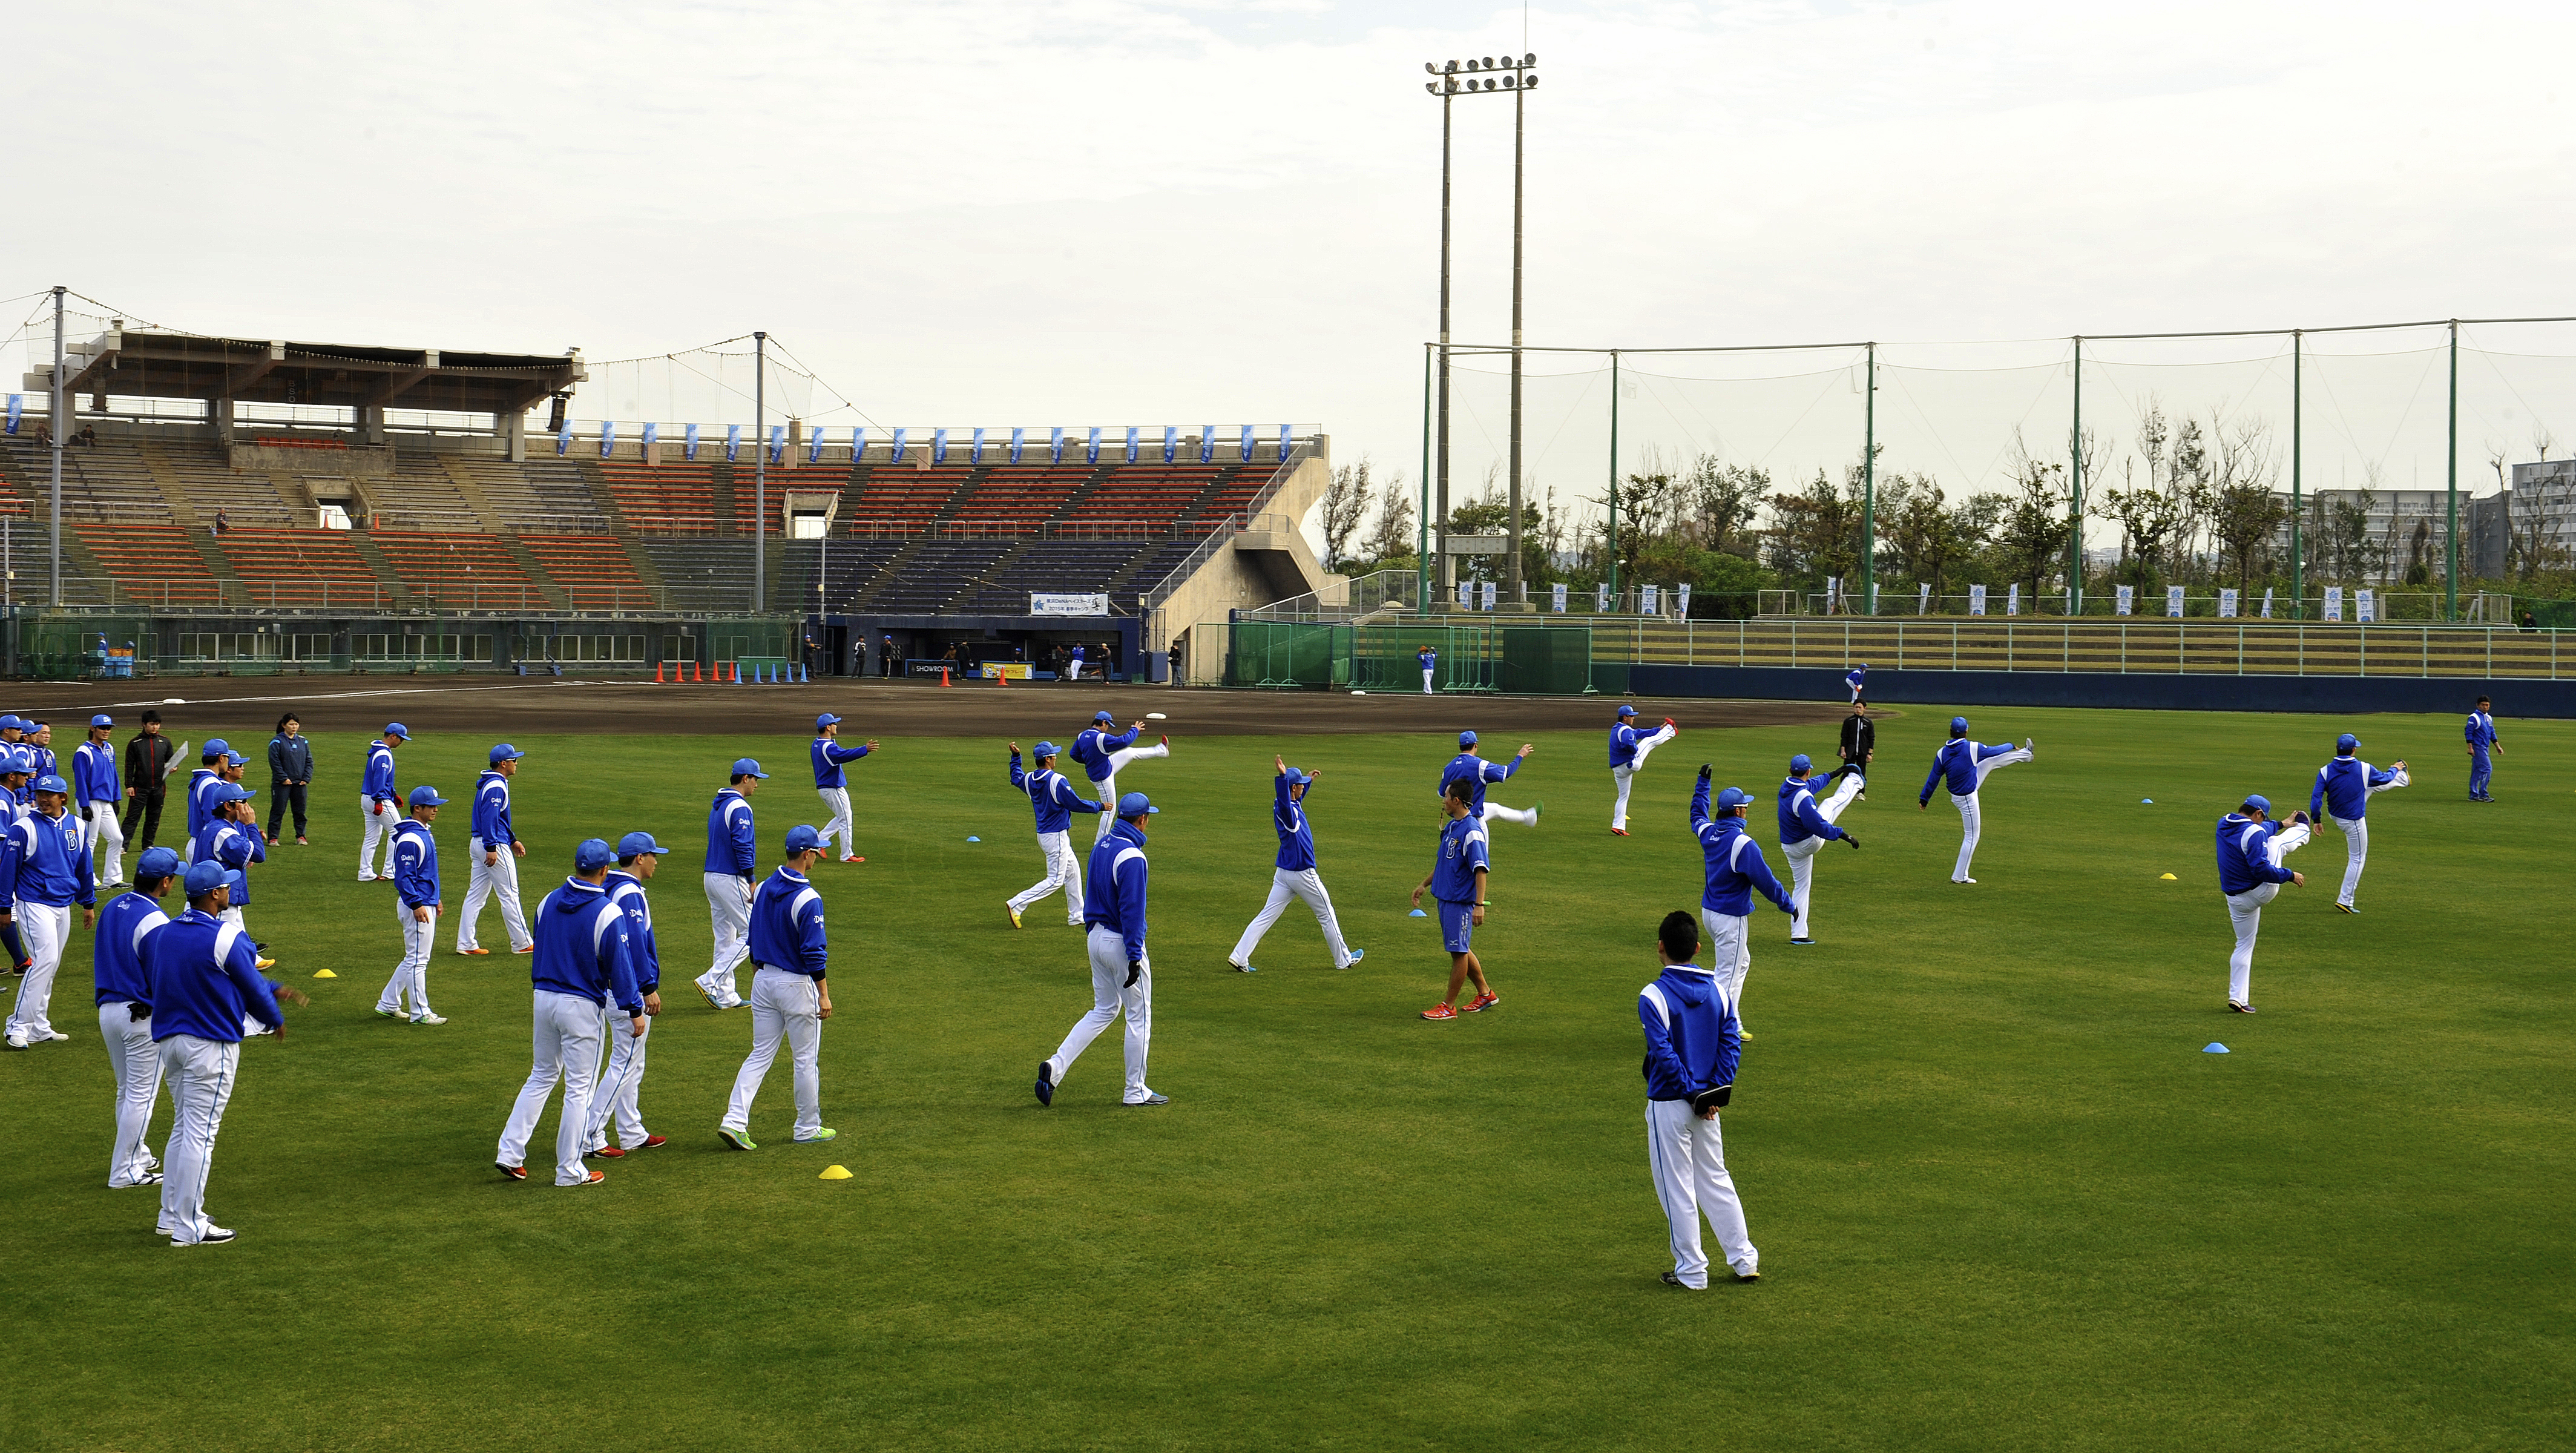 an analysis of baseball in japan Abstract when a major league baseball club signs a japanese star player,   research reported here is derived largely from analysis of team.